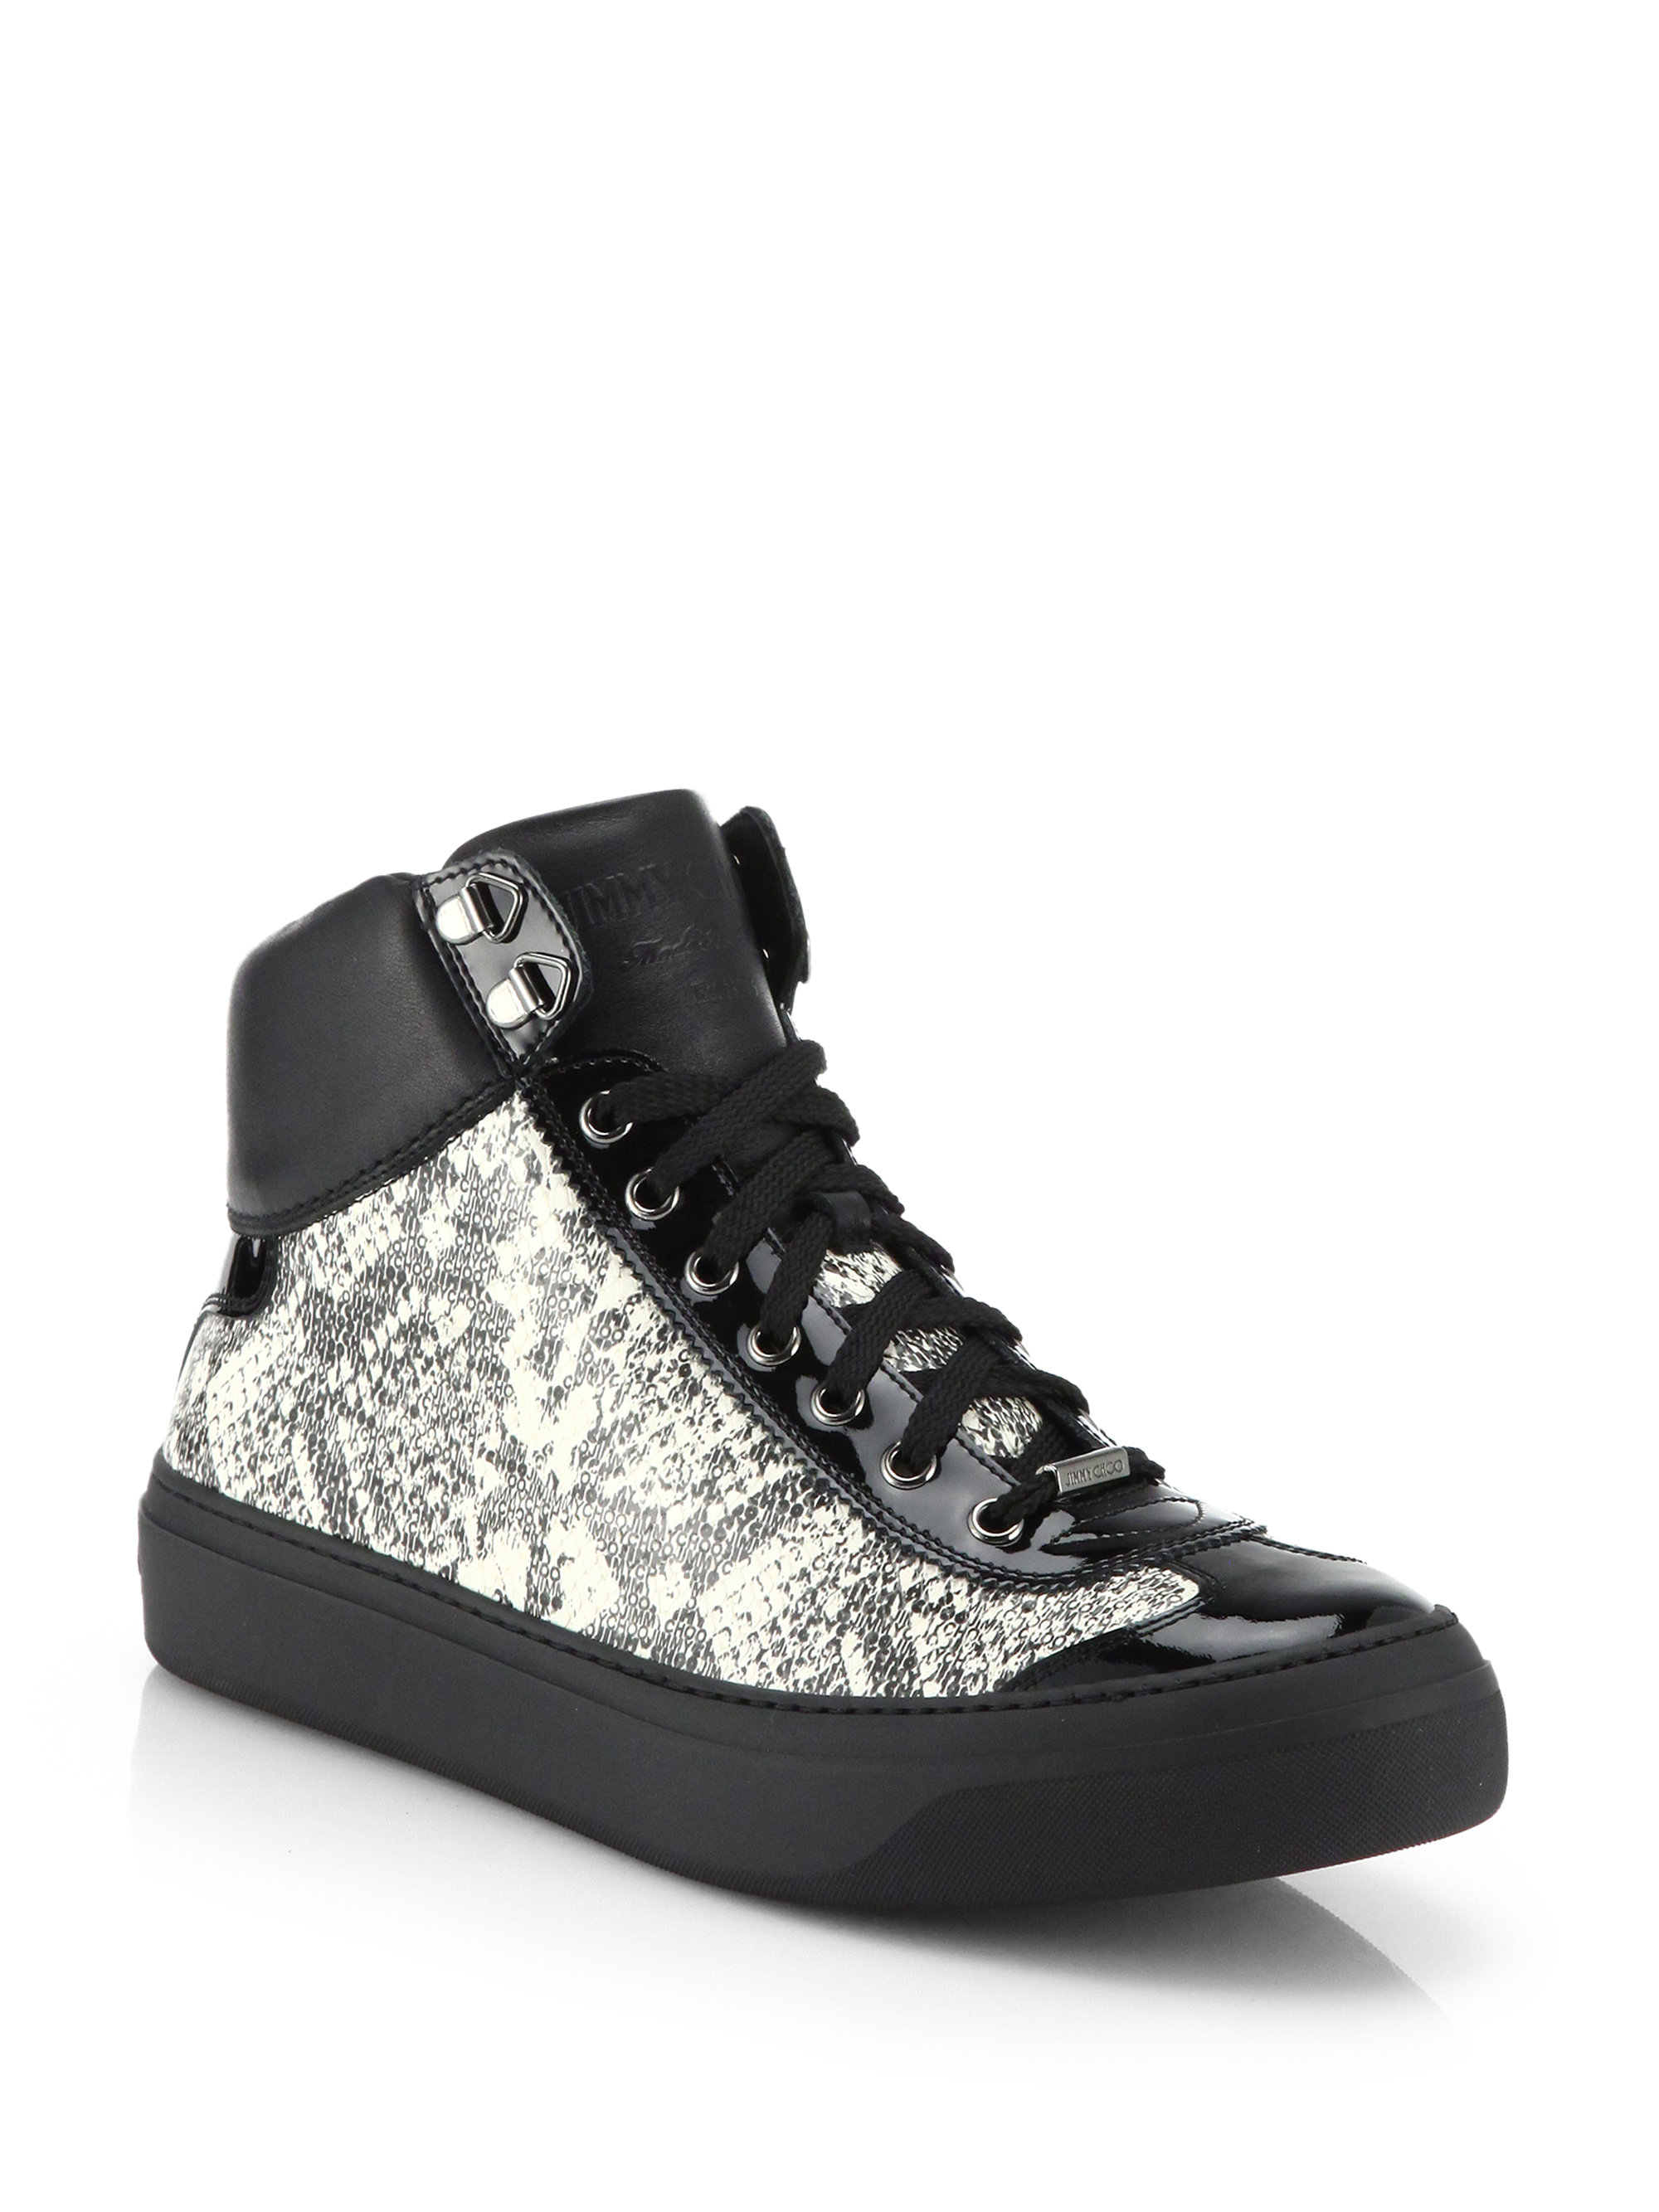 fc58873a77ae Lyst - Jimmy Choo Argyle Snake-print High-top Sneakers for Men